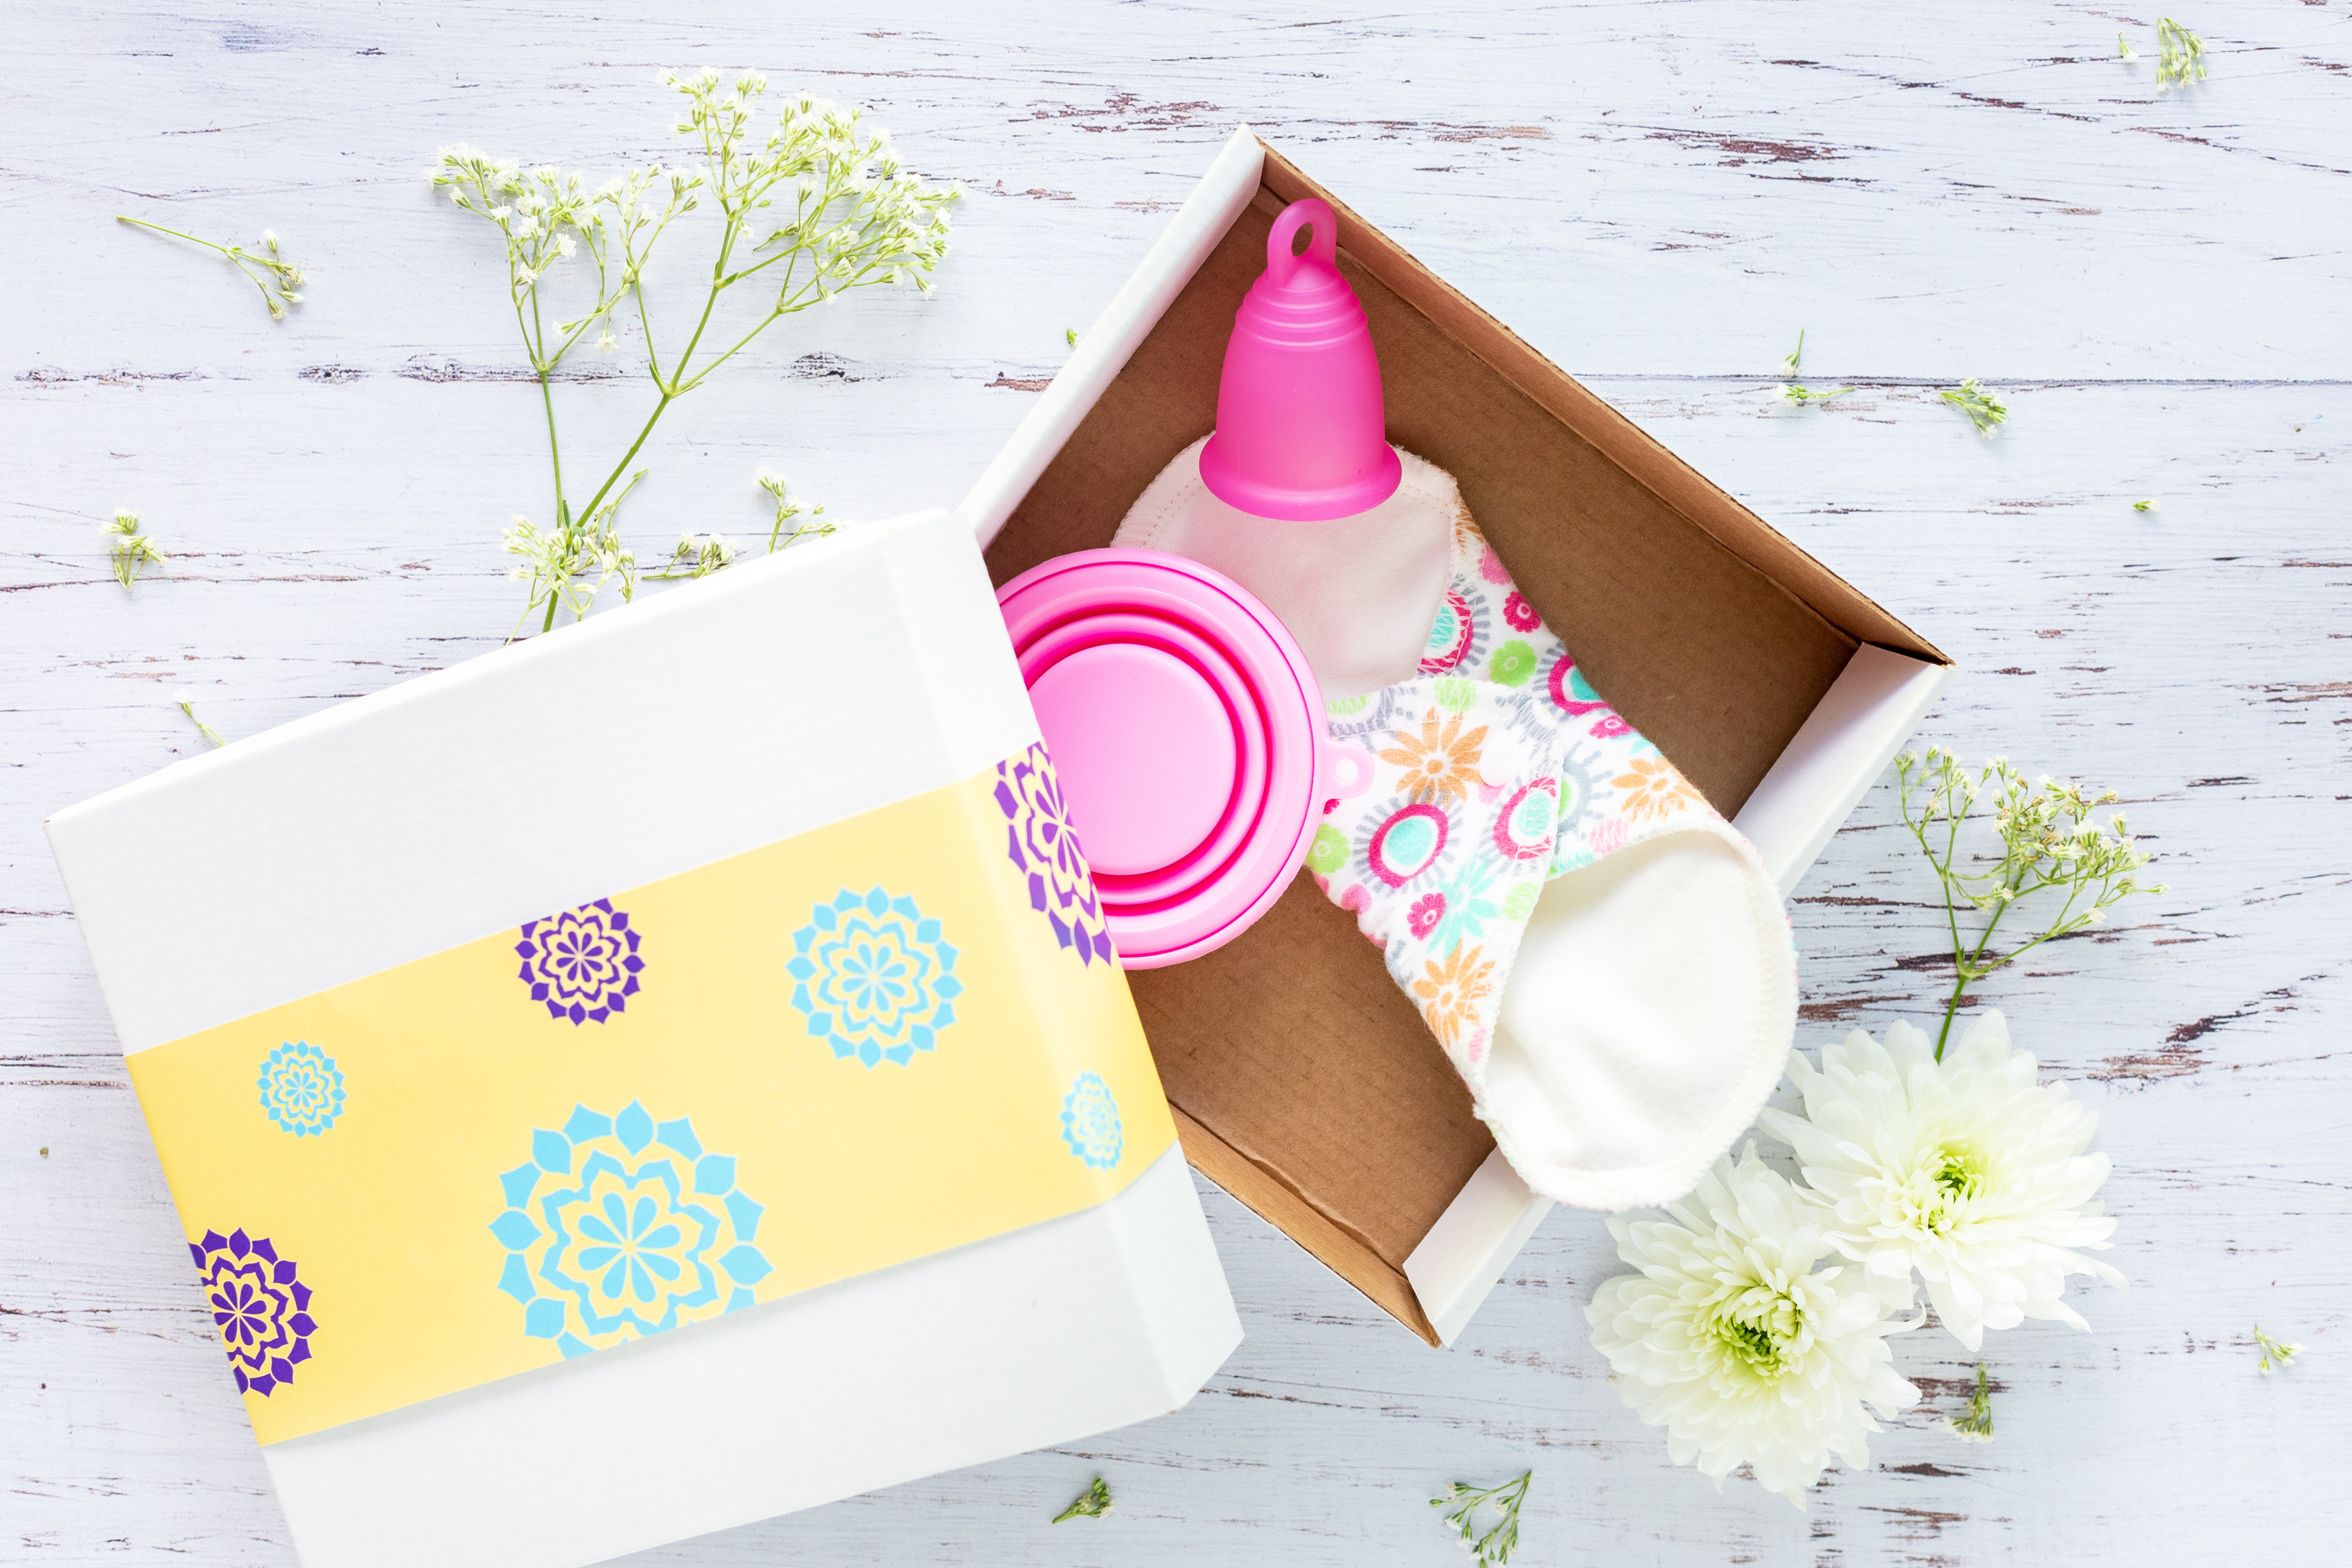 menstrual cup in a box